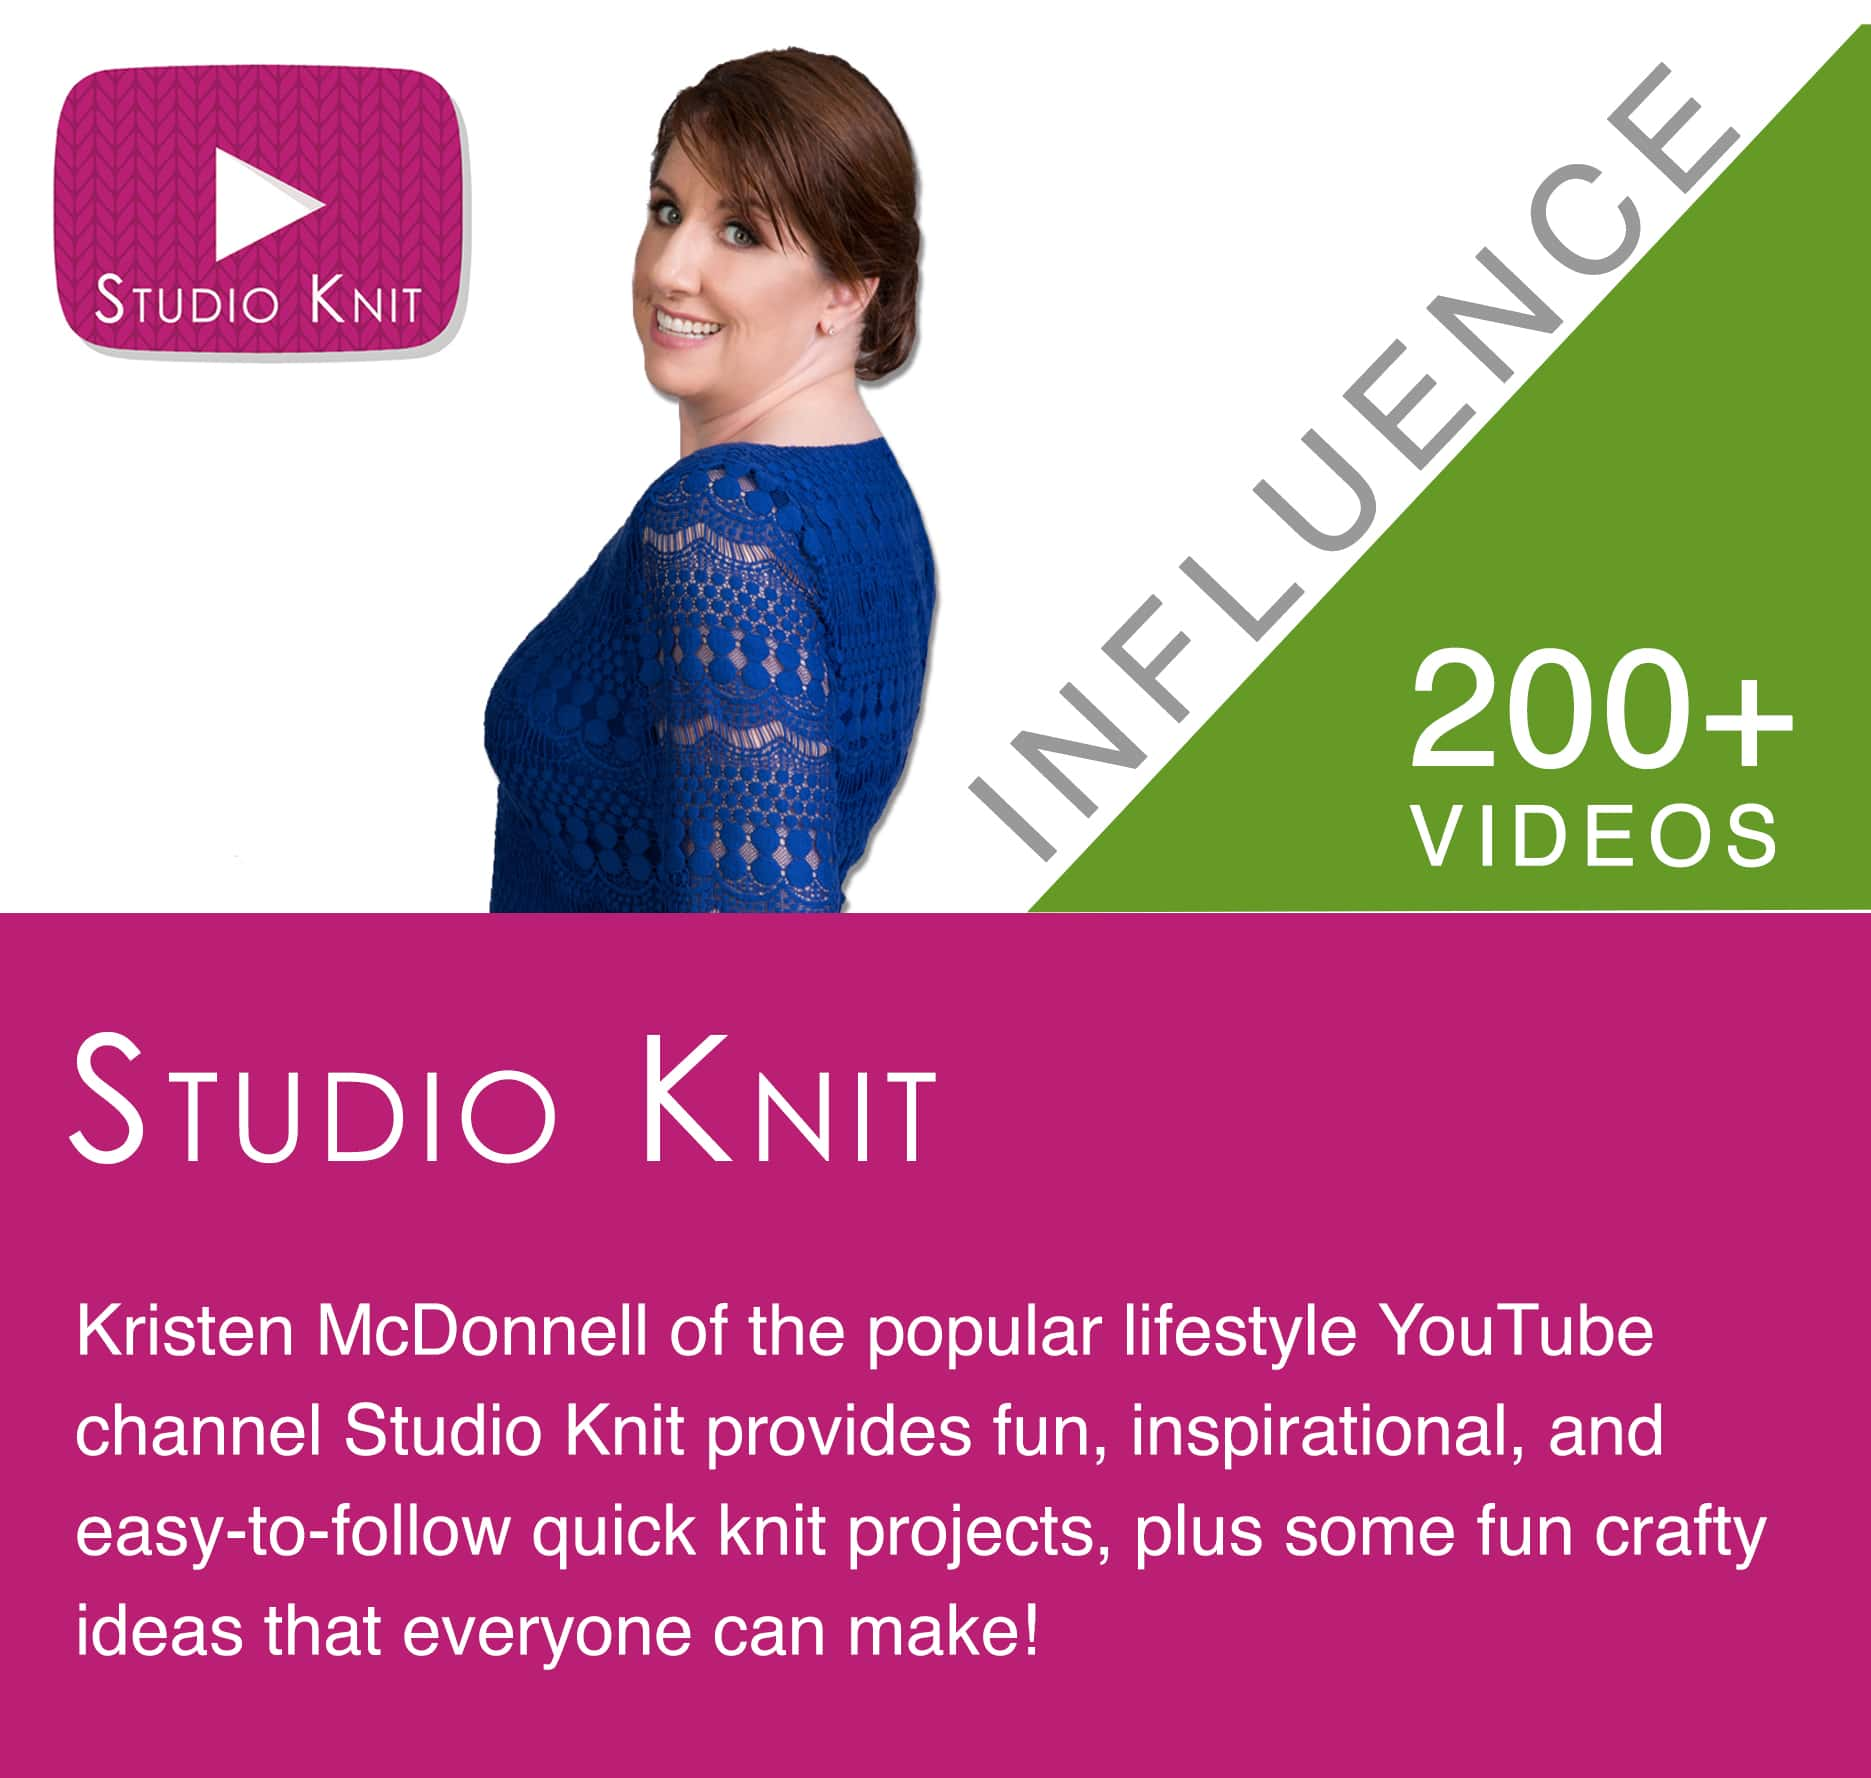 Business and Brand Deals with Studio Knit